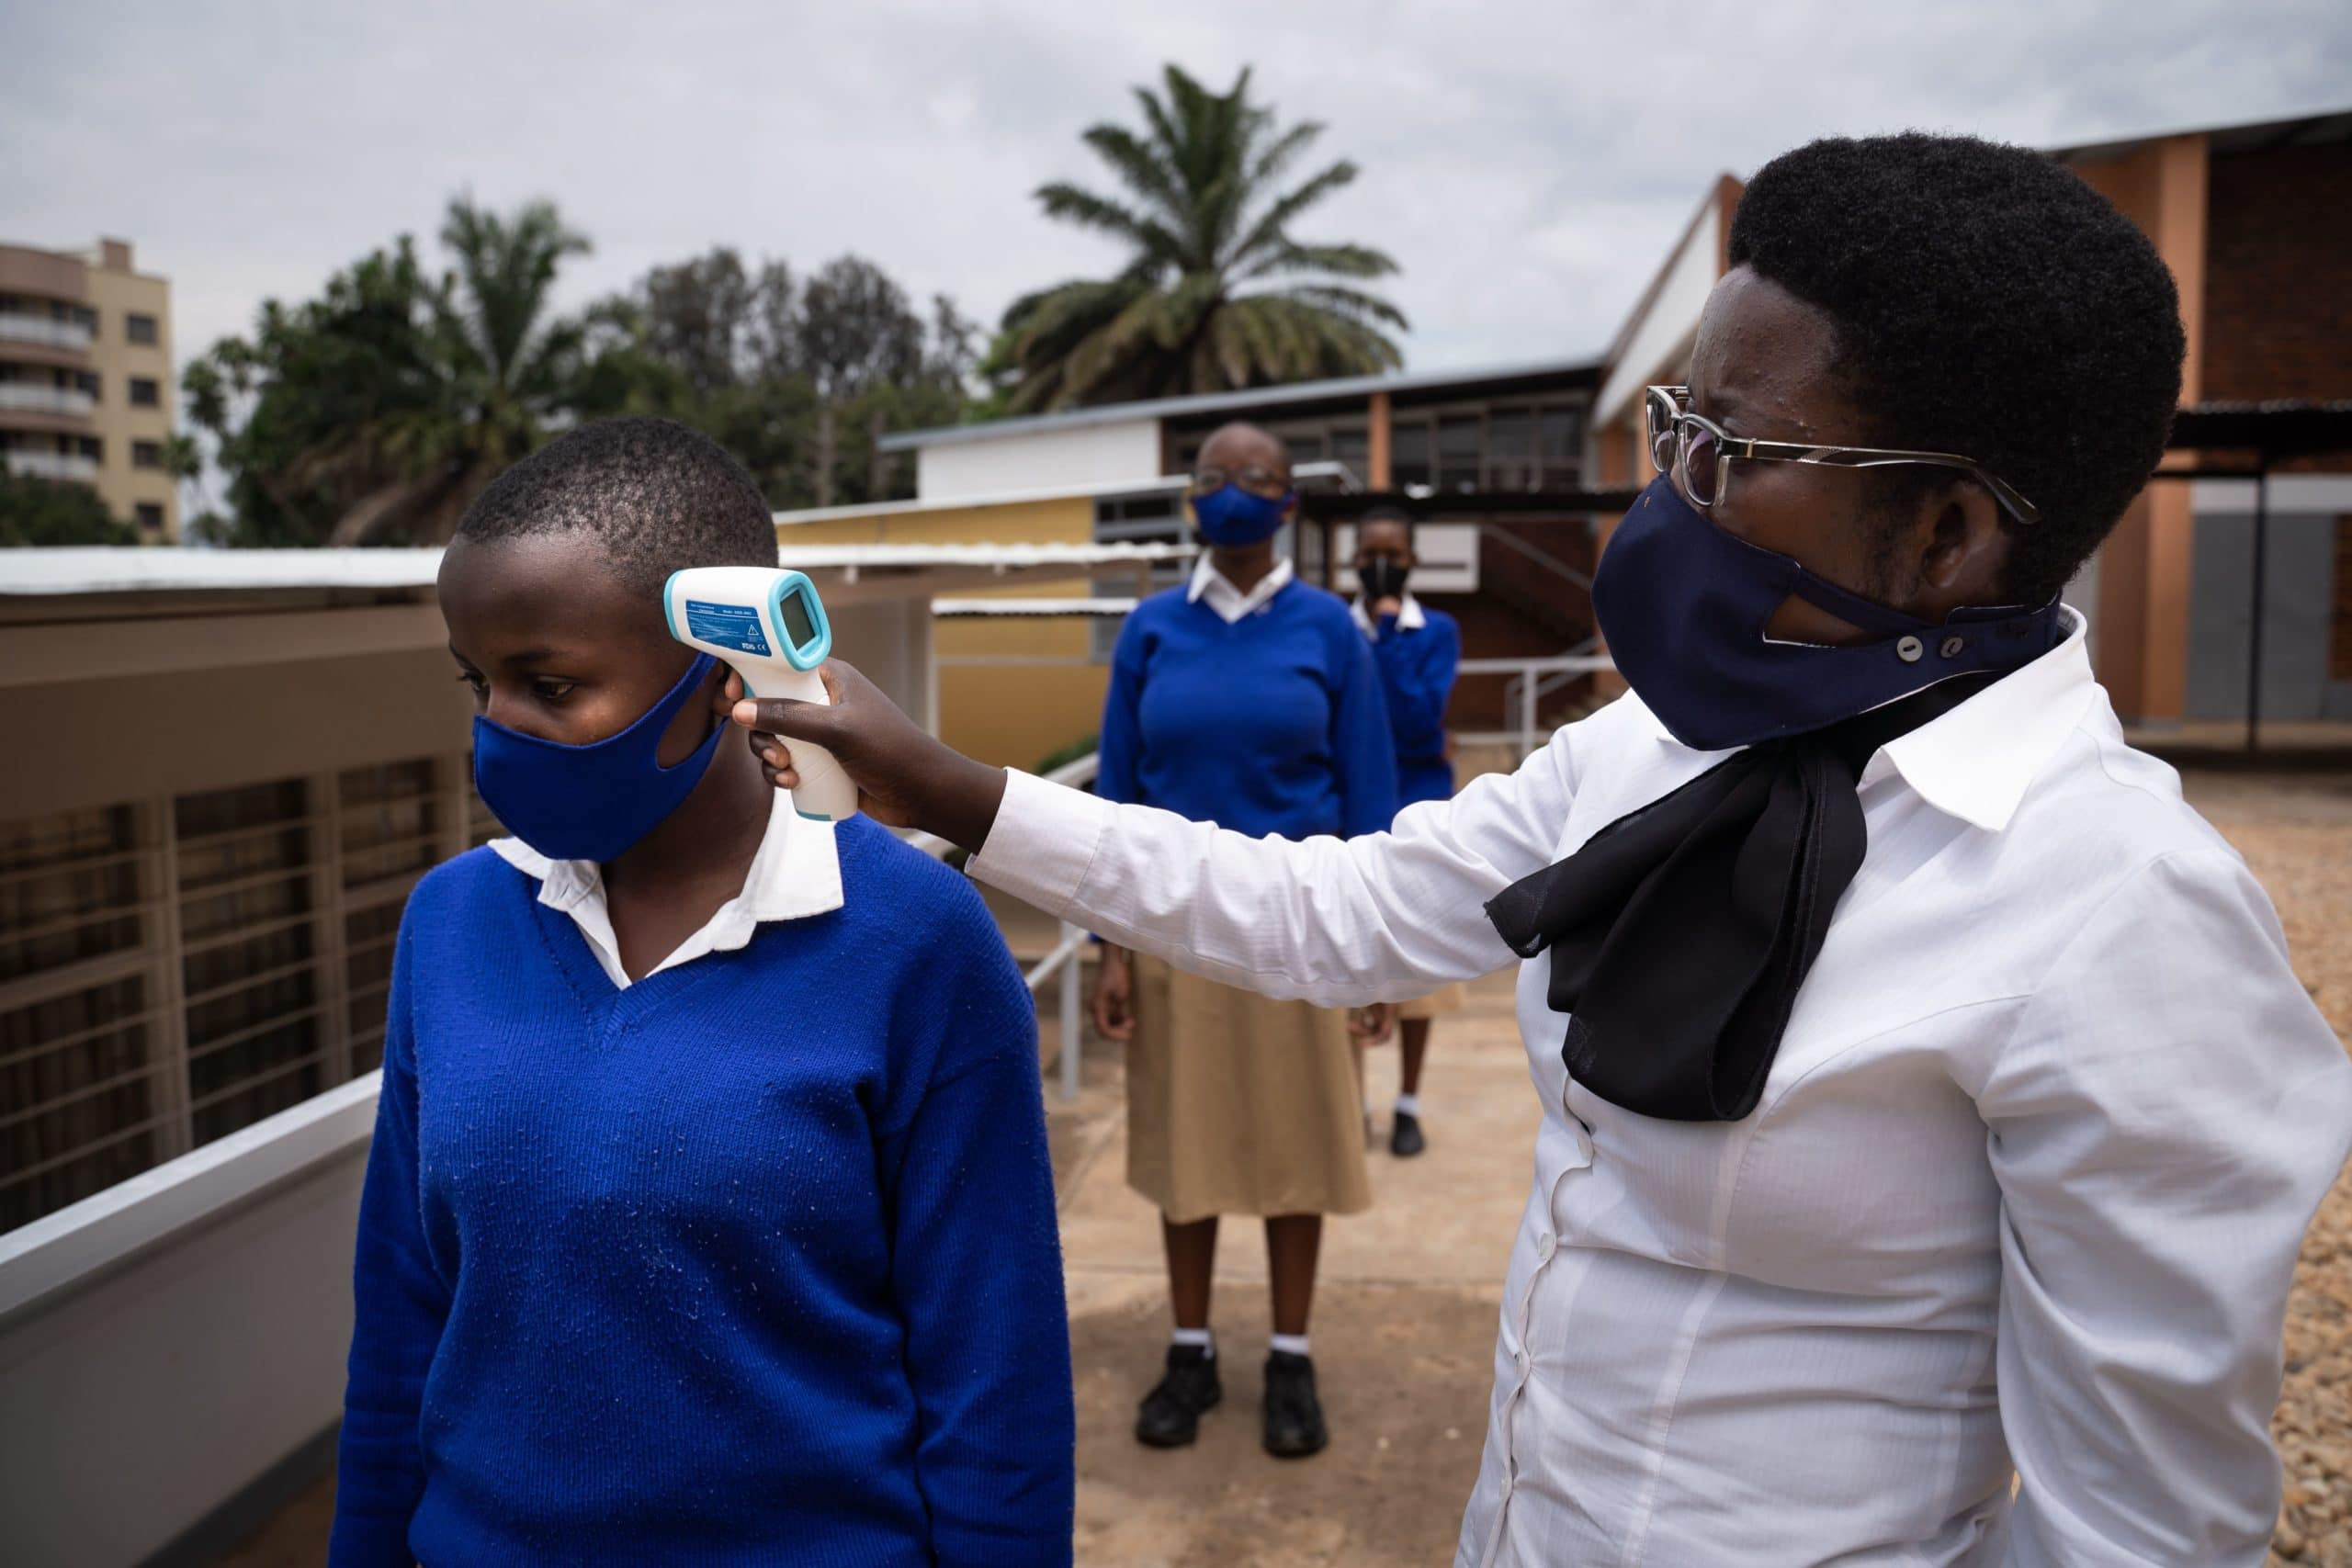 RWANDA-HEALTH-VIRUS-EDUCATION